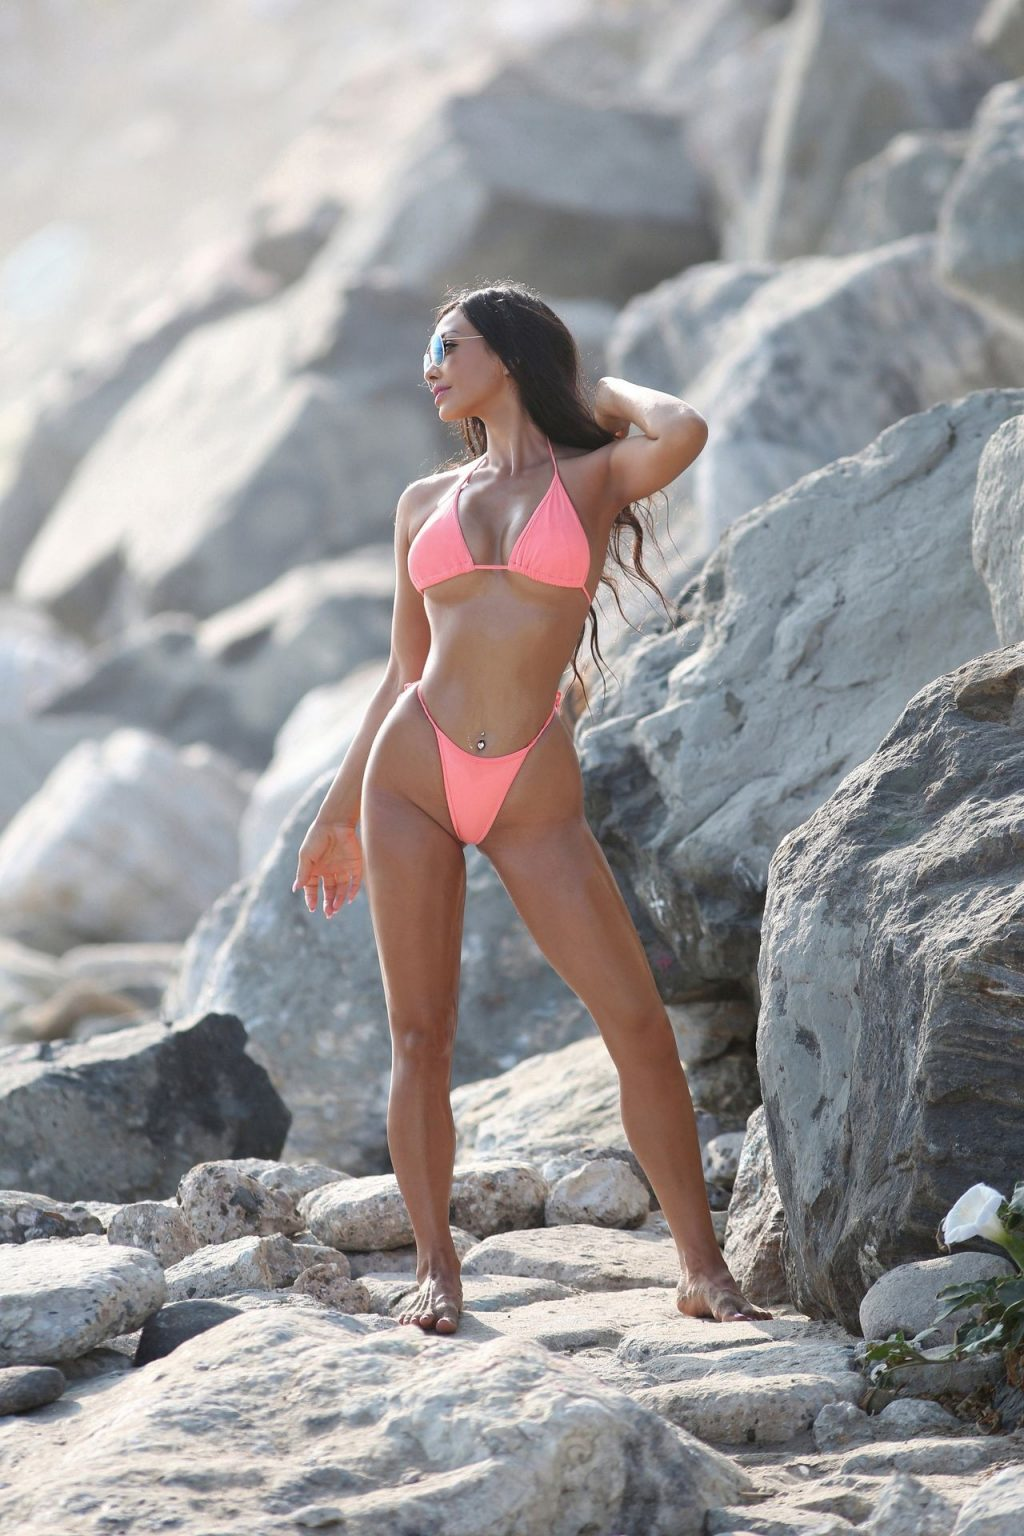 Val Fit Shows Off Her Sexy Beach Body in a Tiny Pink Bikini (46 Photos)